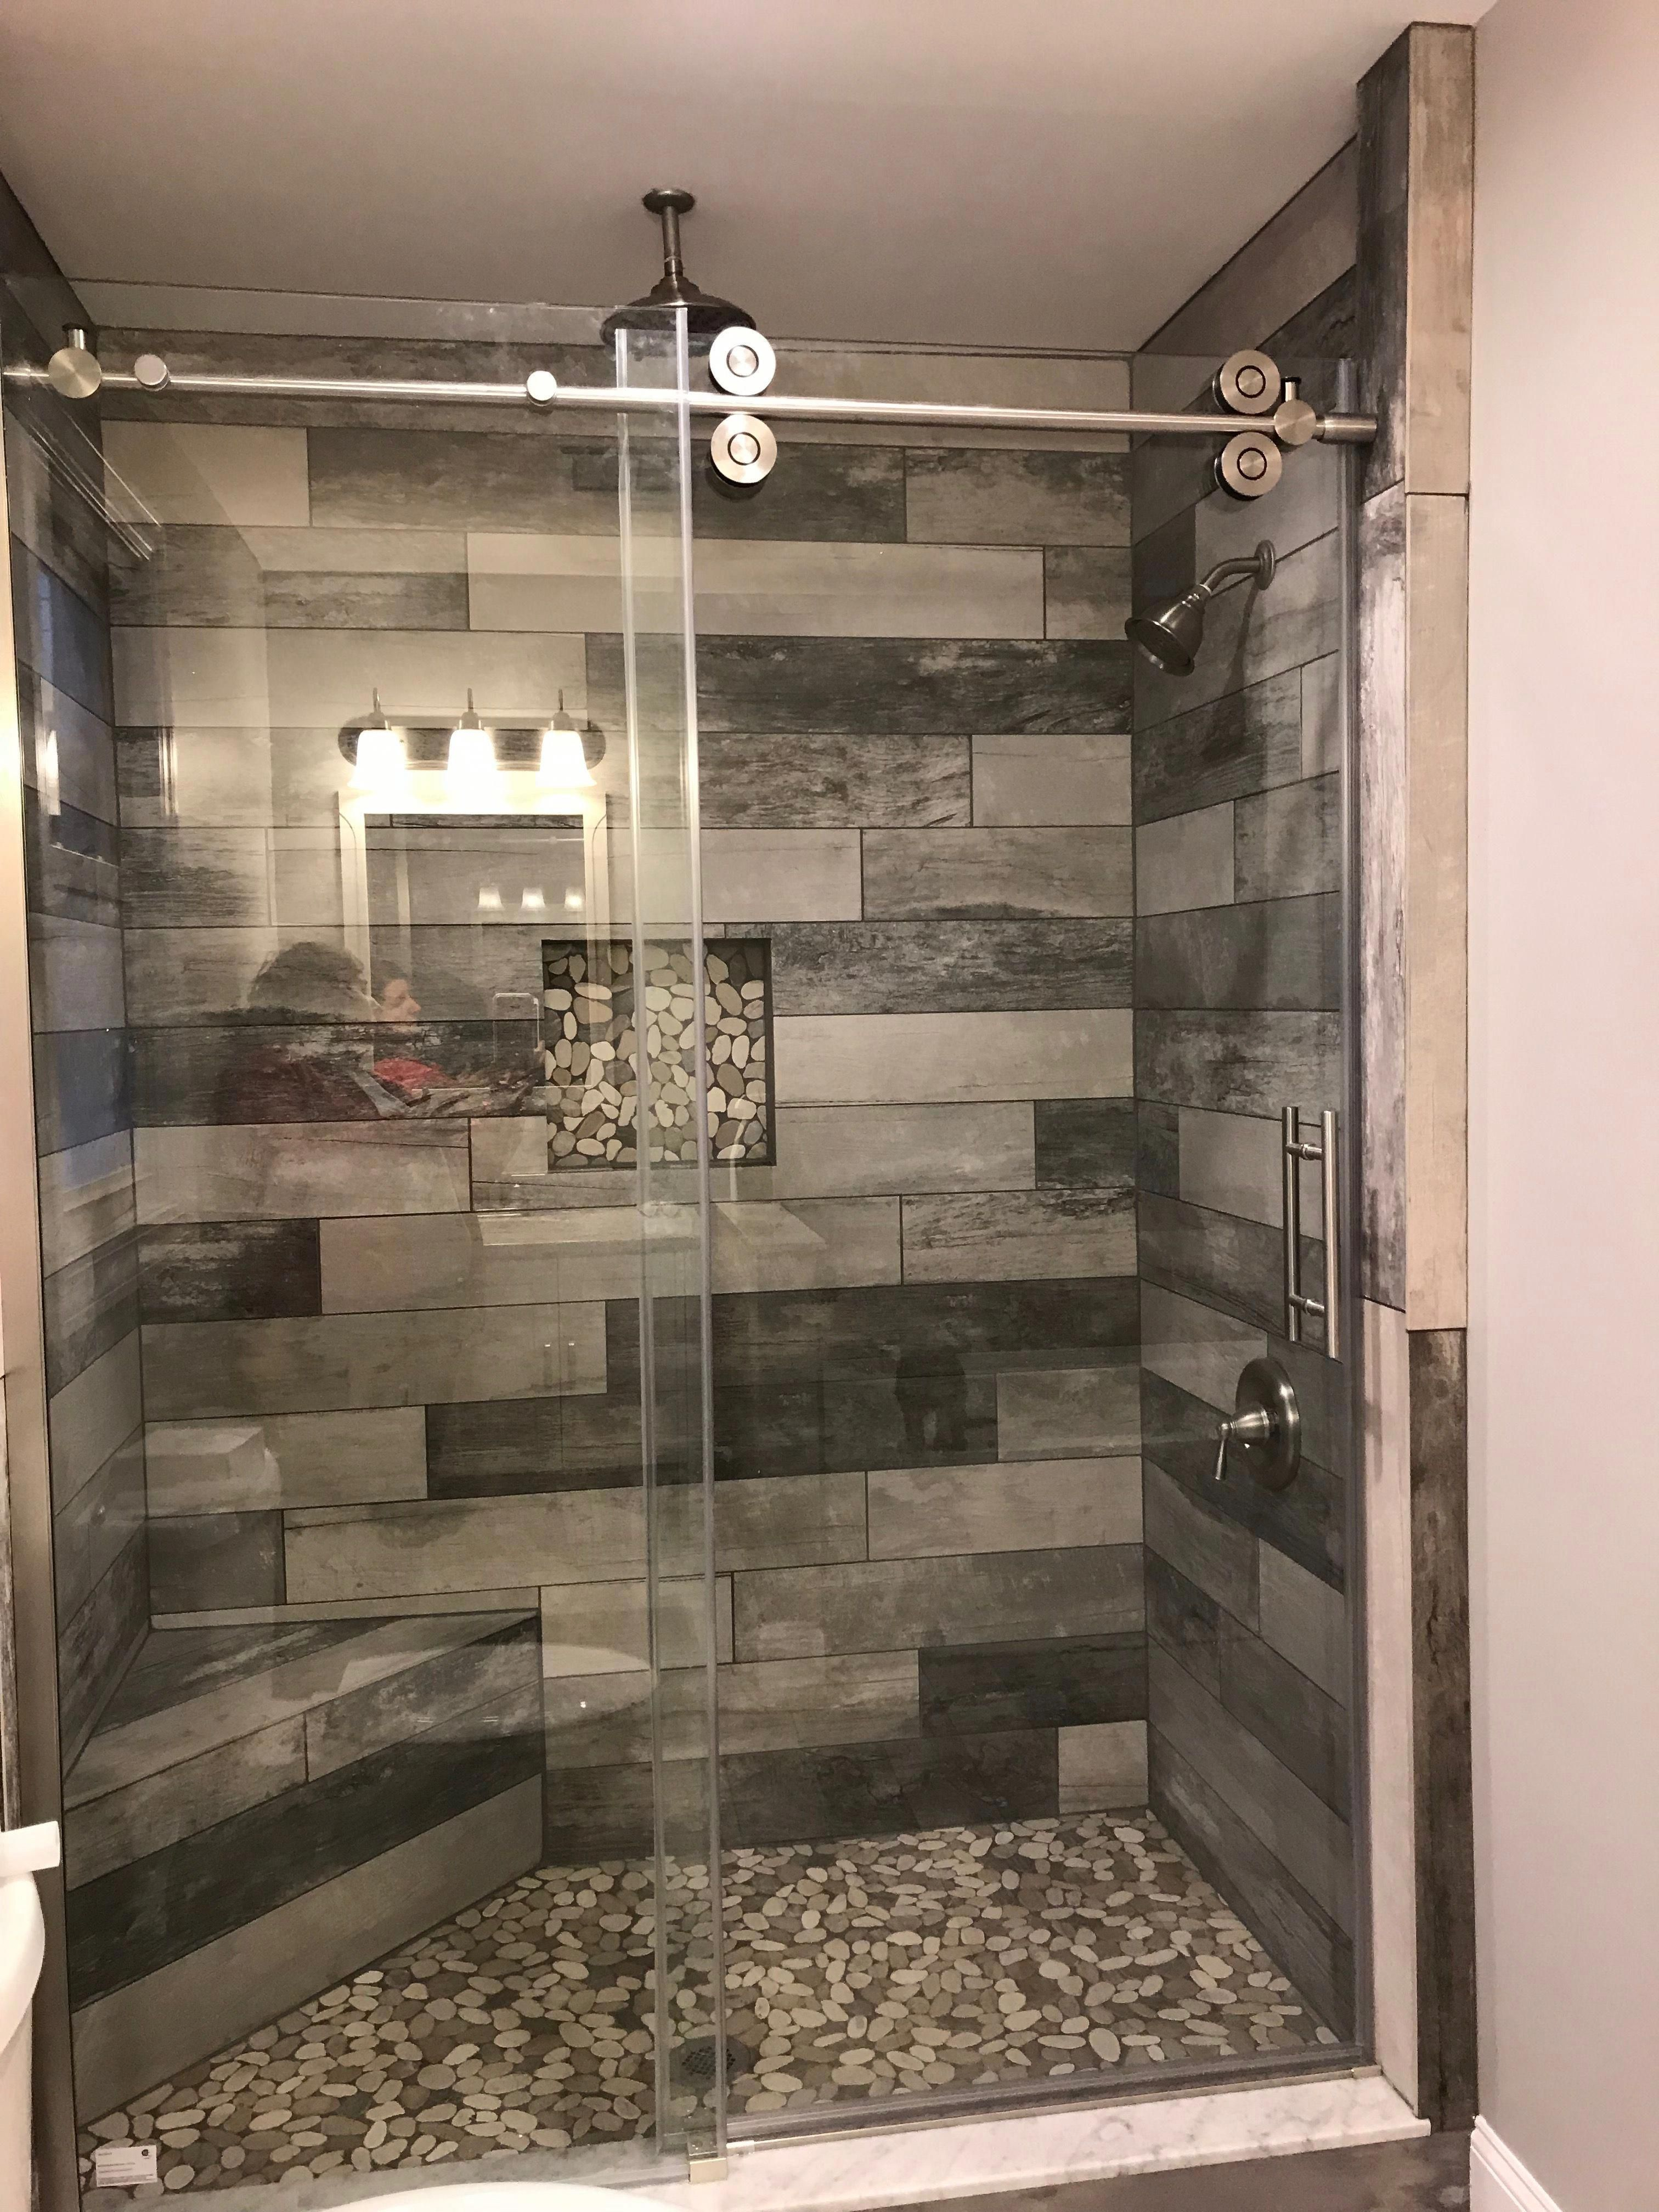 This Unique Photo Is Absolutely A Noteworthy Style Principle Bathroomtile In 2020 Badezimmer Renovieren Bad Styling Kleines Bad Umbau